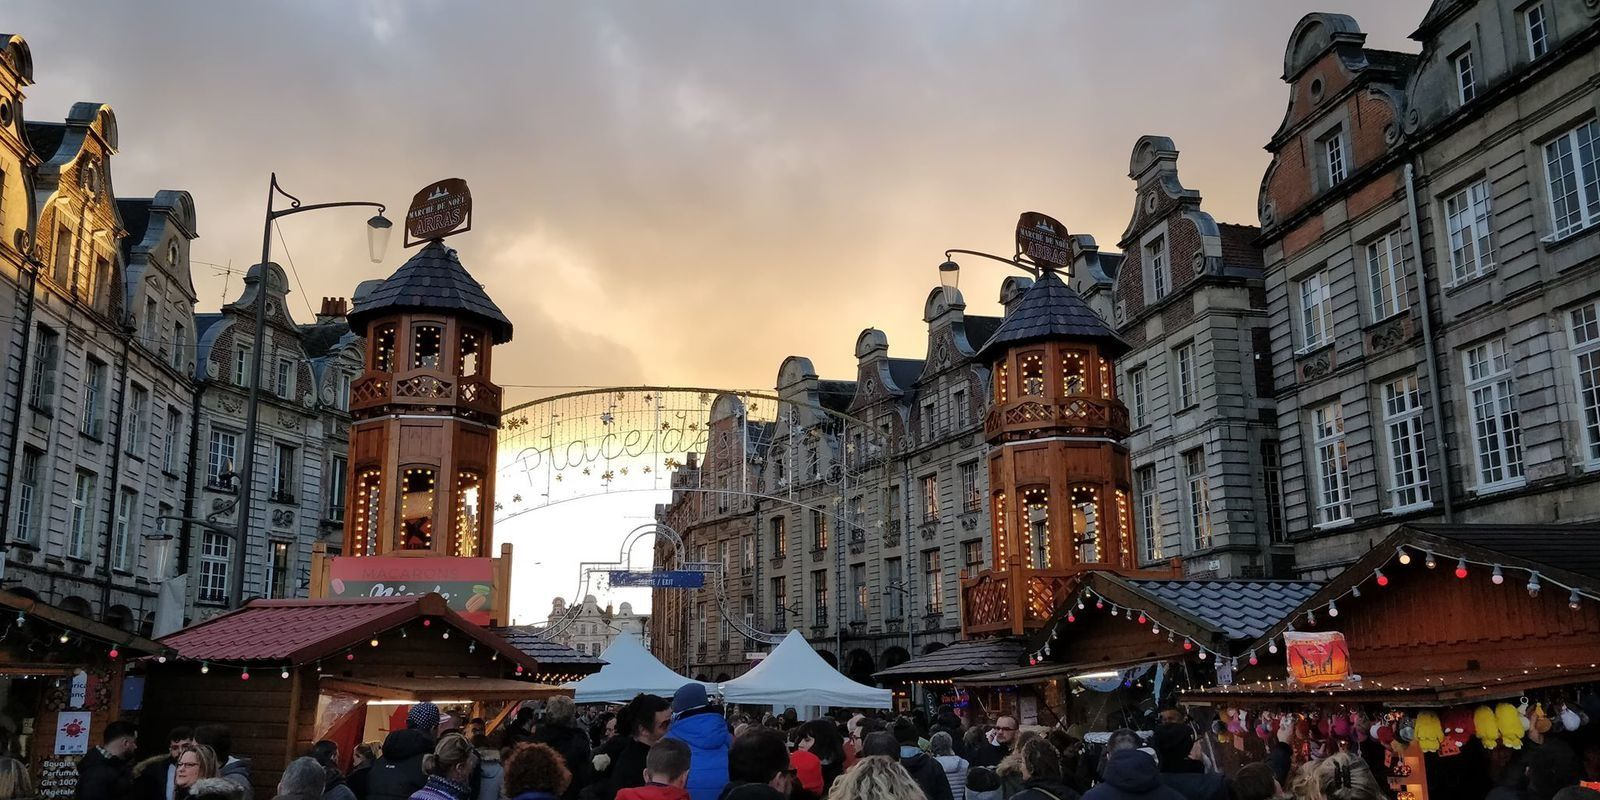 les places d' Arras à Noël